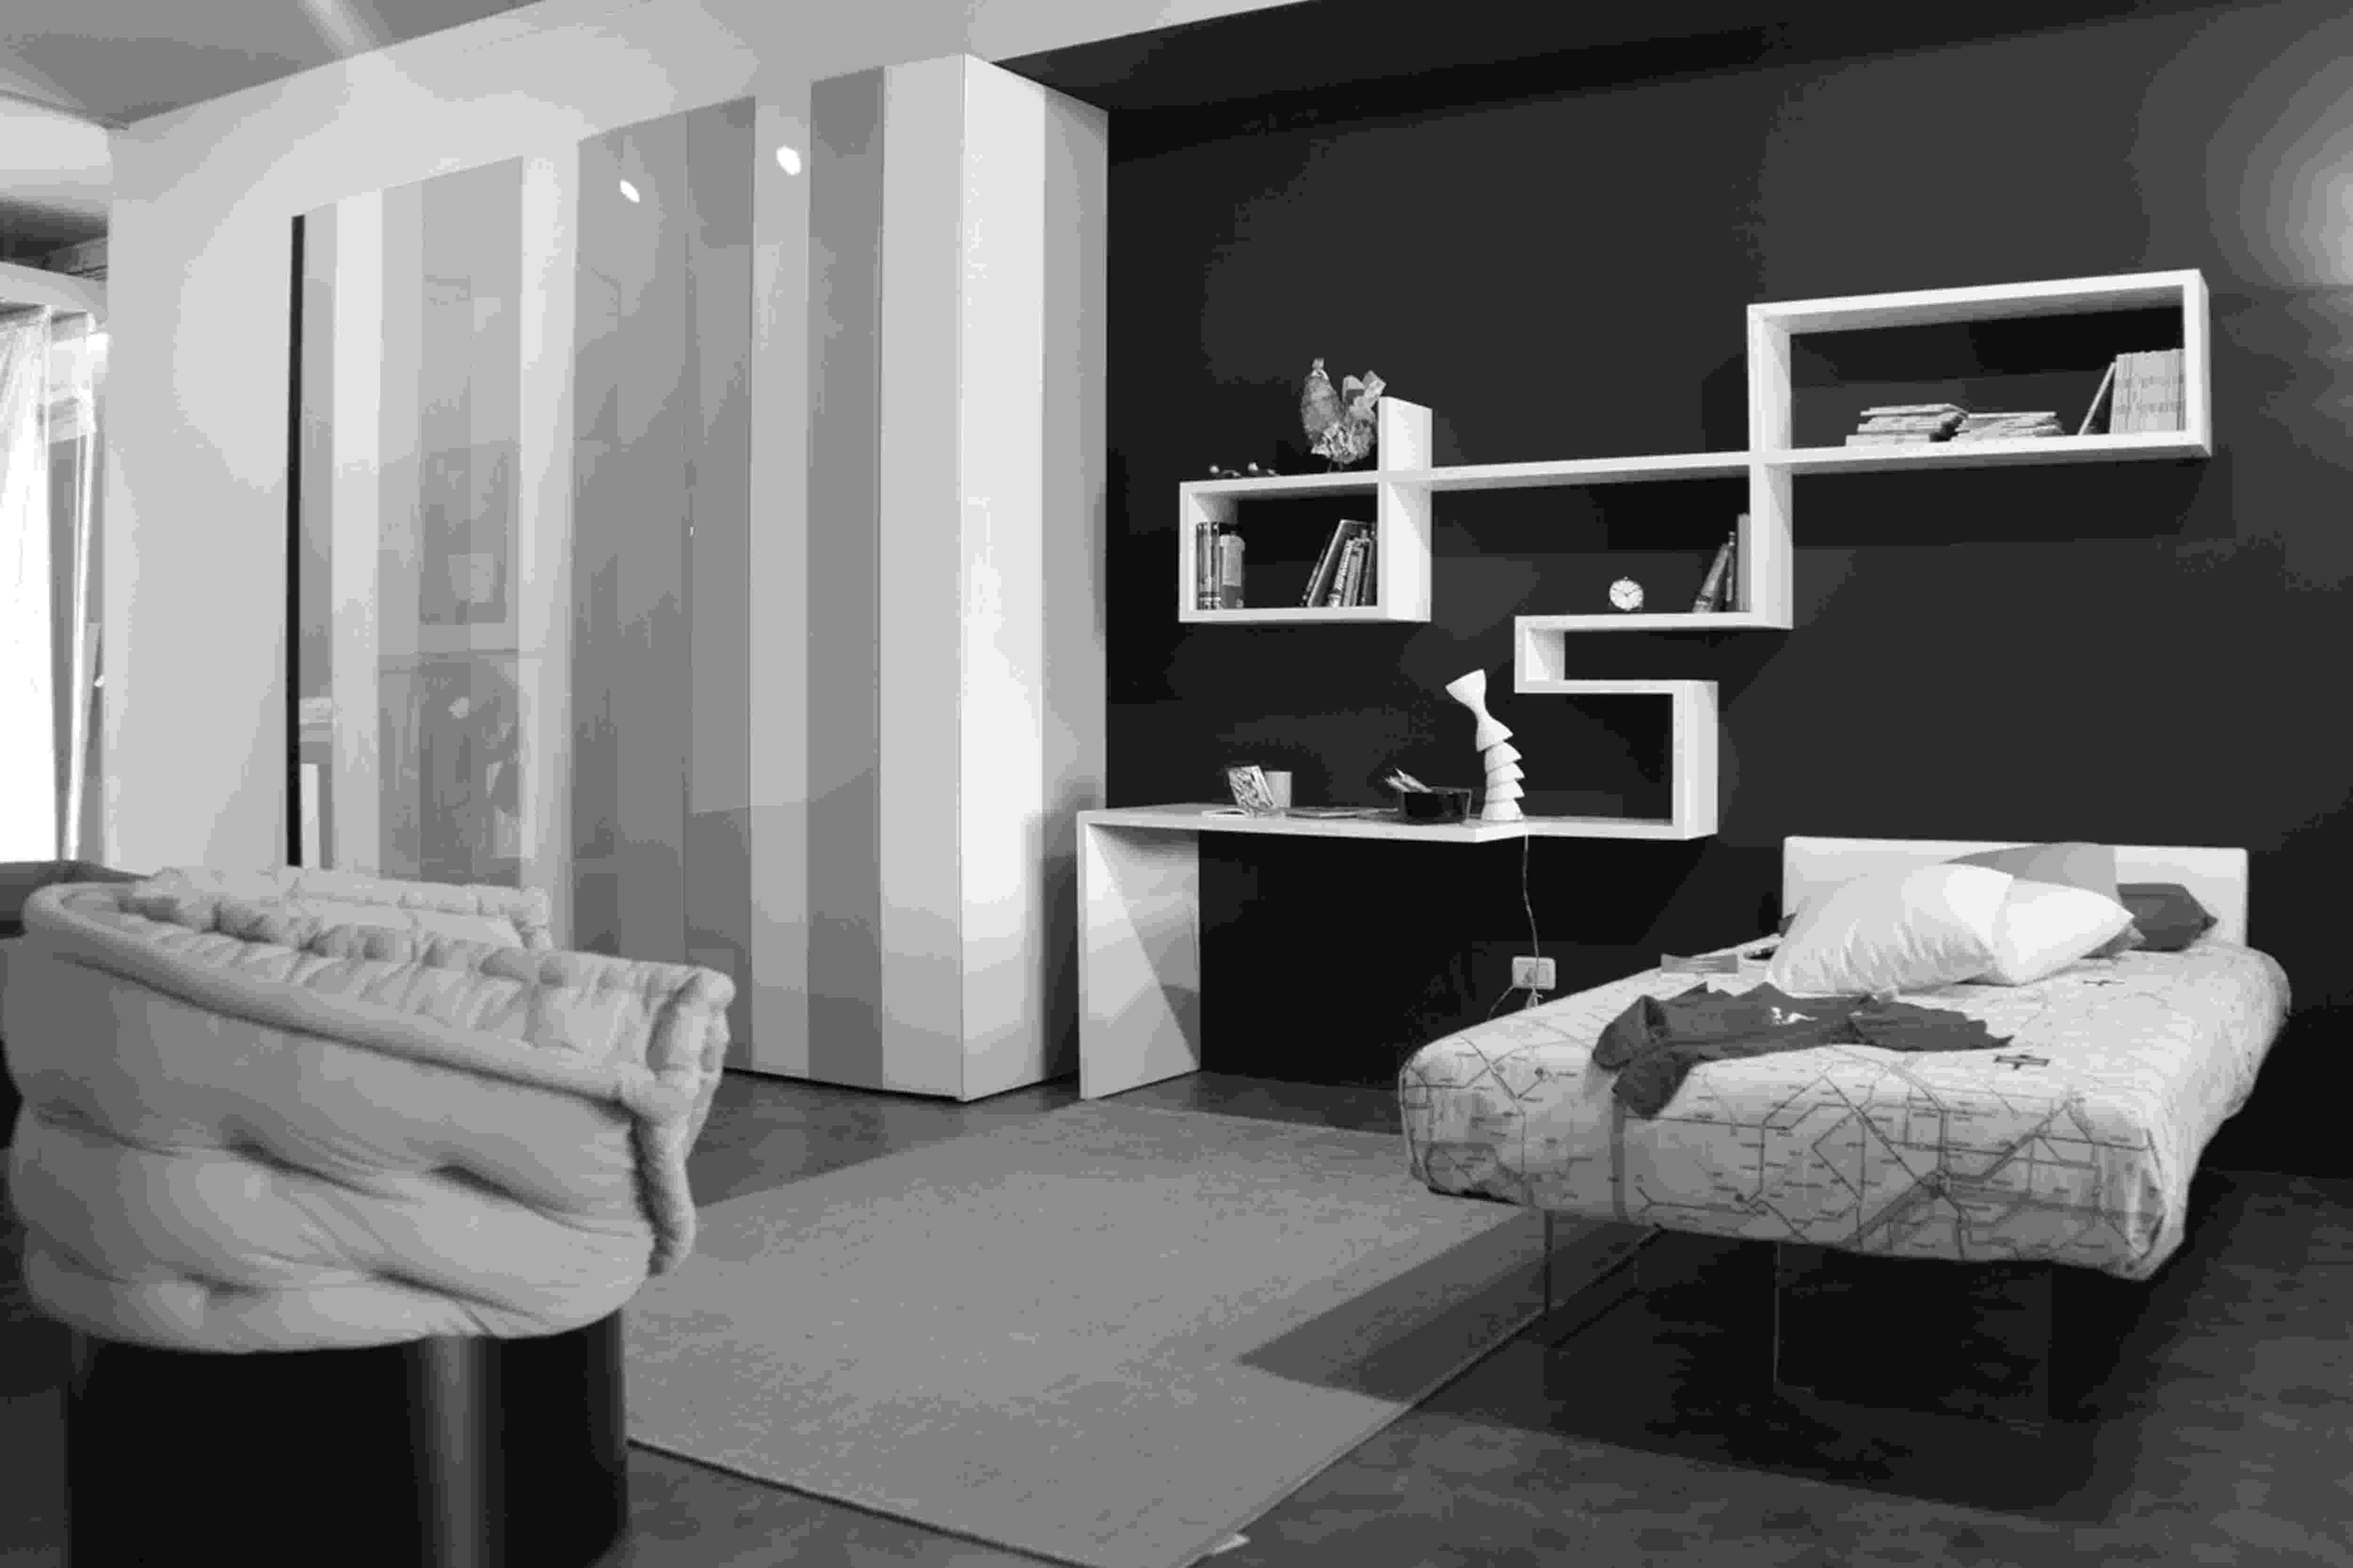 color ideas painting old chairs grey and blue wall black bed paint ideas for bedroom ideas old color chairs painting